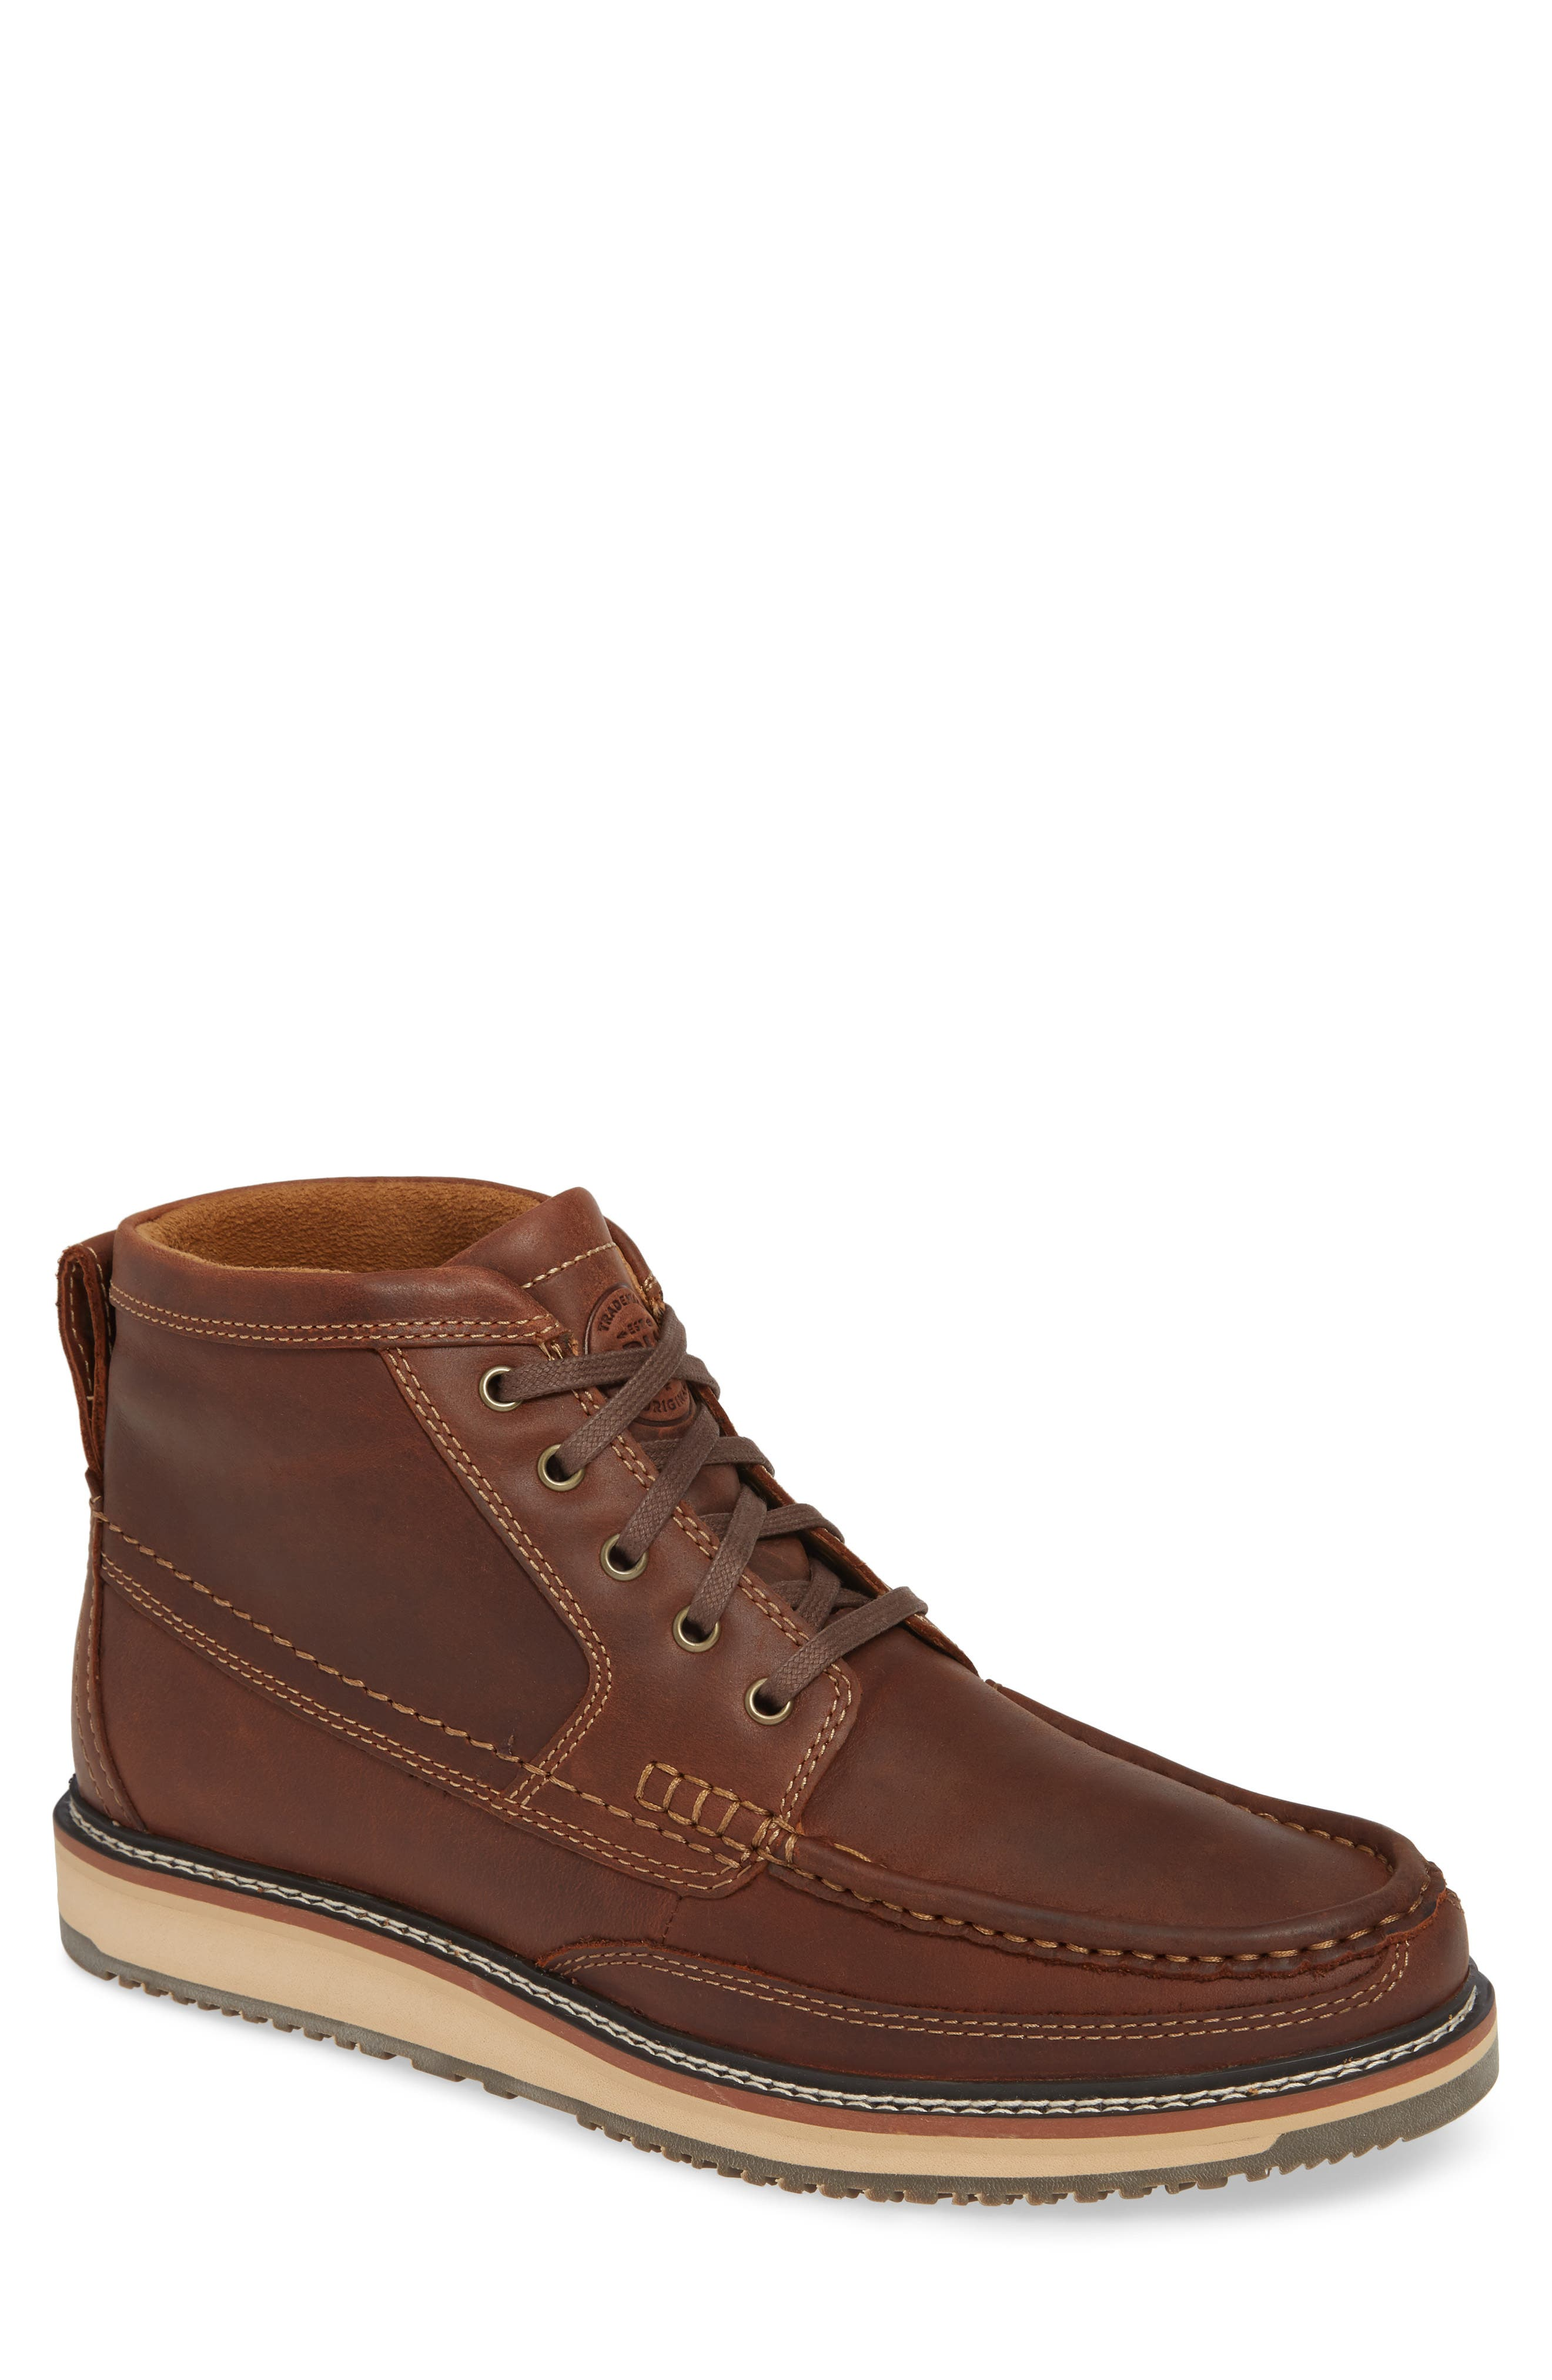 ARIAT, 'Lookout' Moc Toe Boot, Main thumbnail 1, color, FOOTHILL BROWN LEATHER